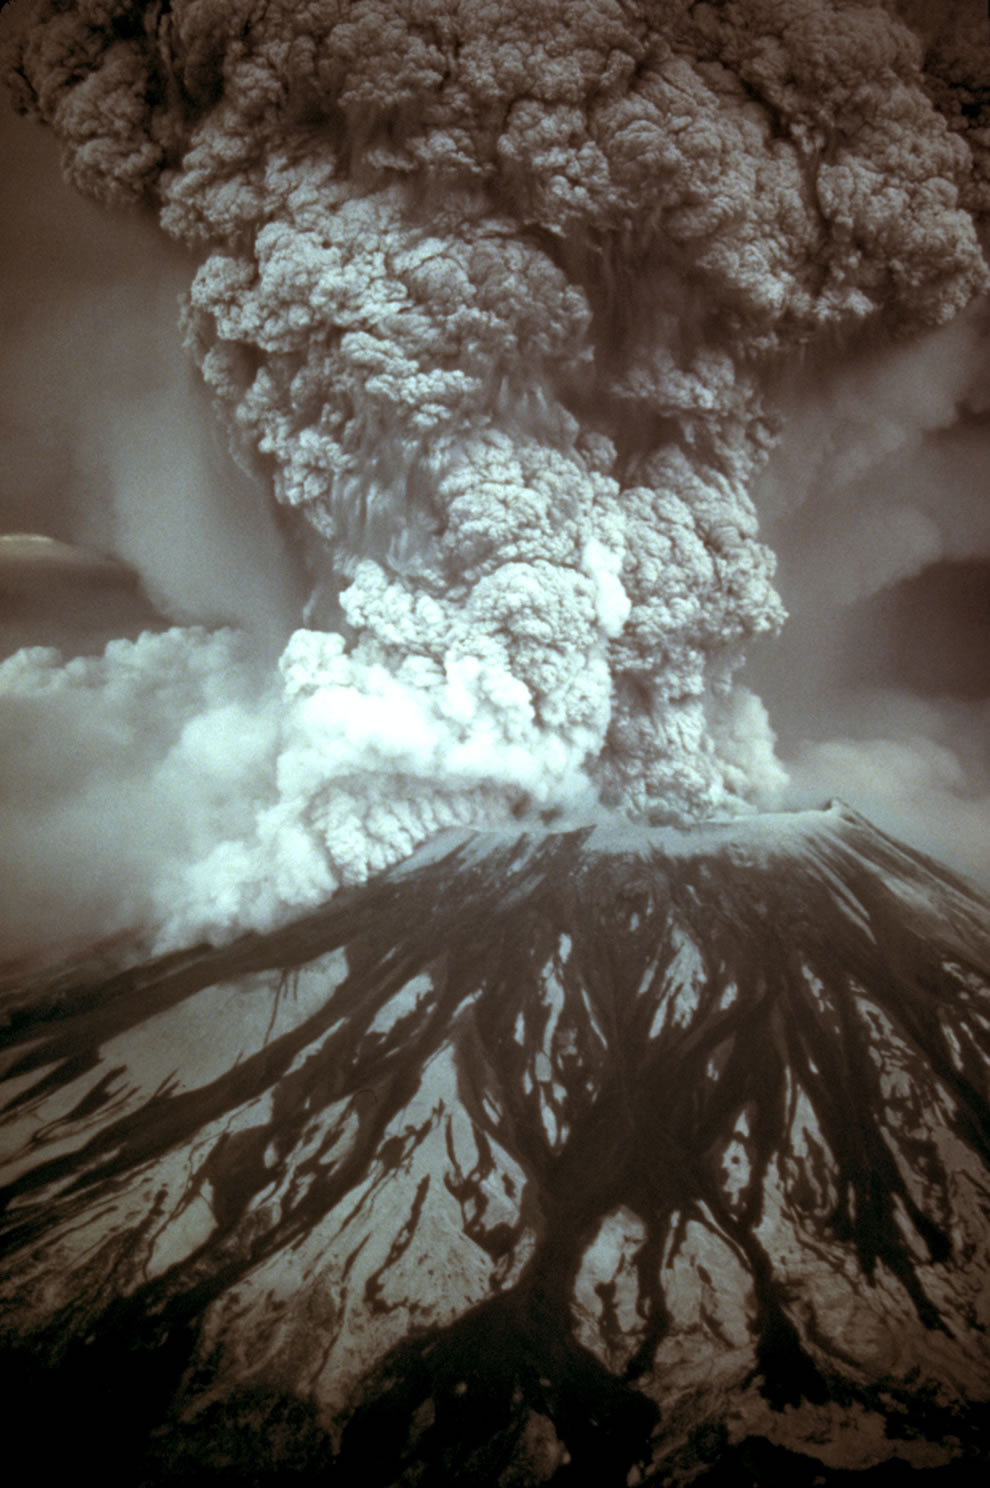 1300 feet of mt st helens peak blew outwards 5-18-80